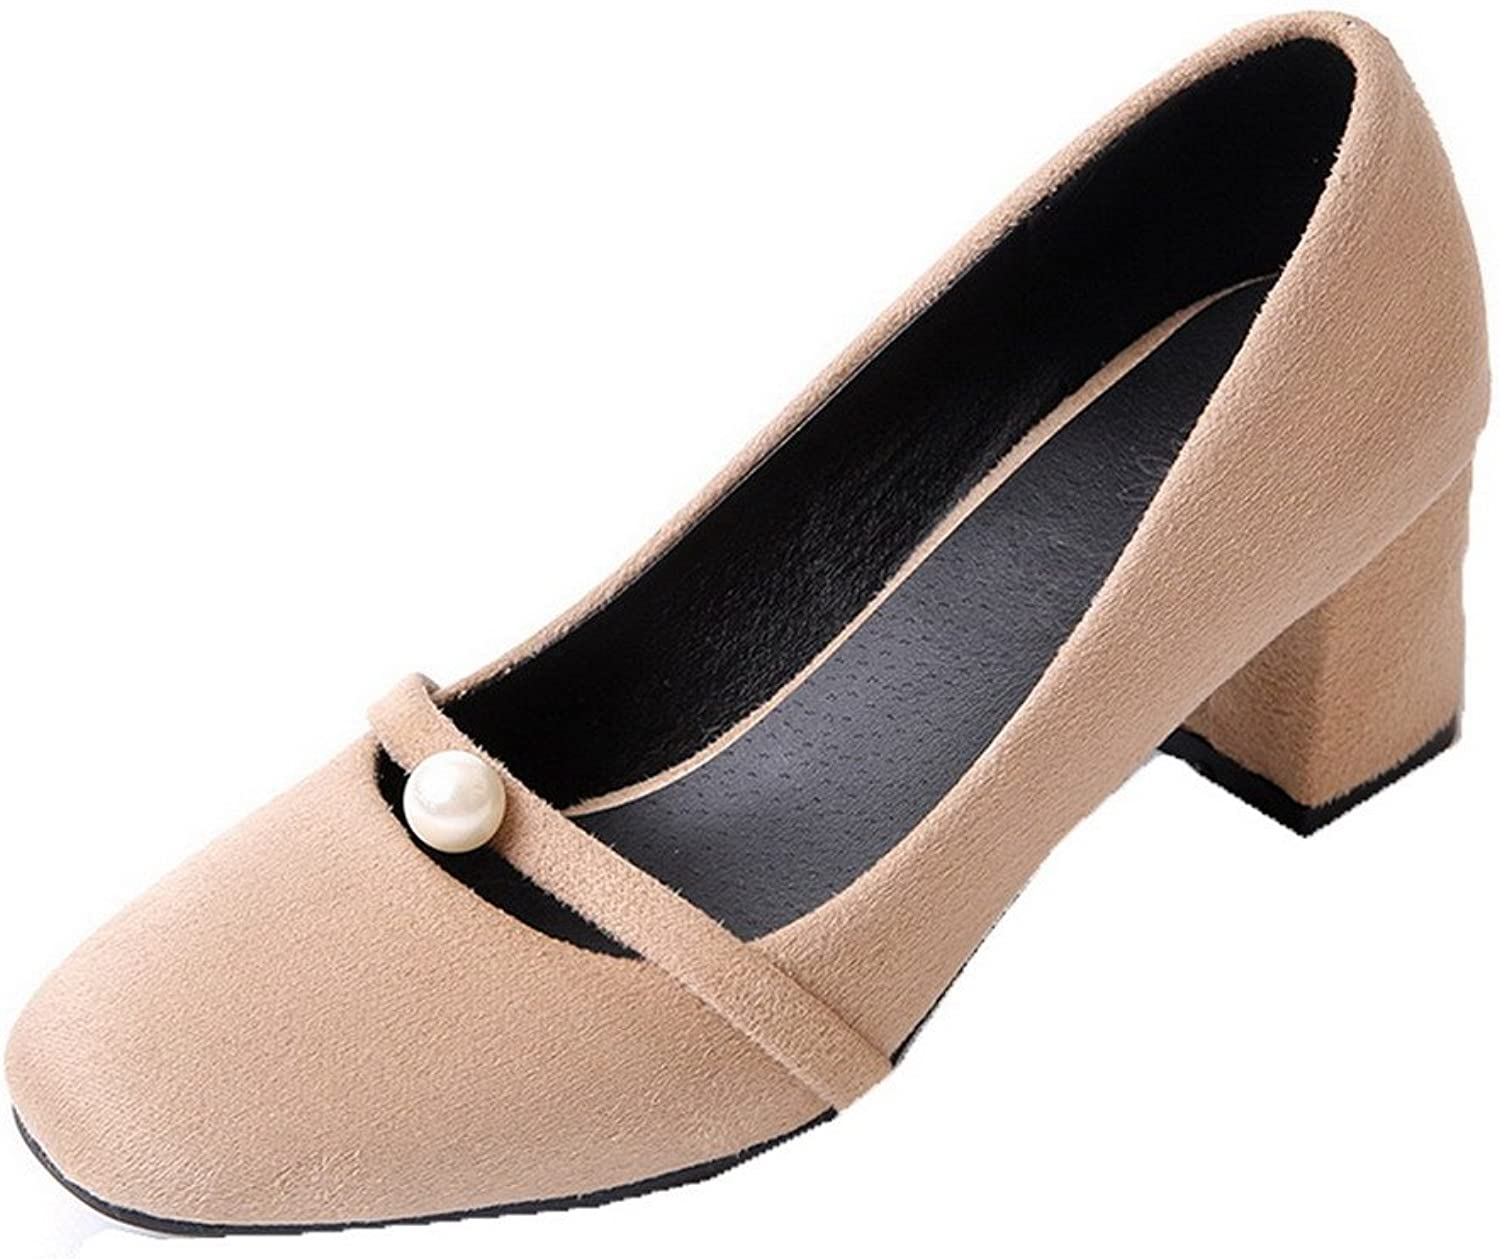 WeenFashion Women's Imitated Suede Pull-On Square-Toe Kitten-Heels Pumps-shoes